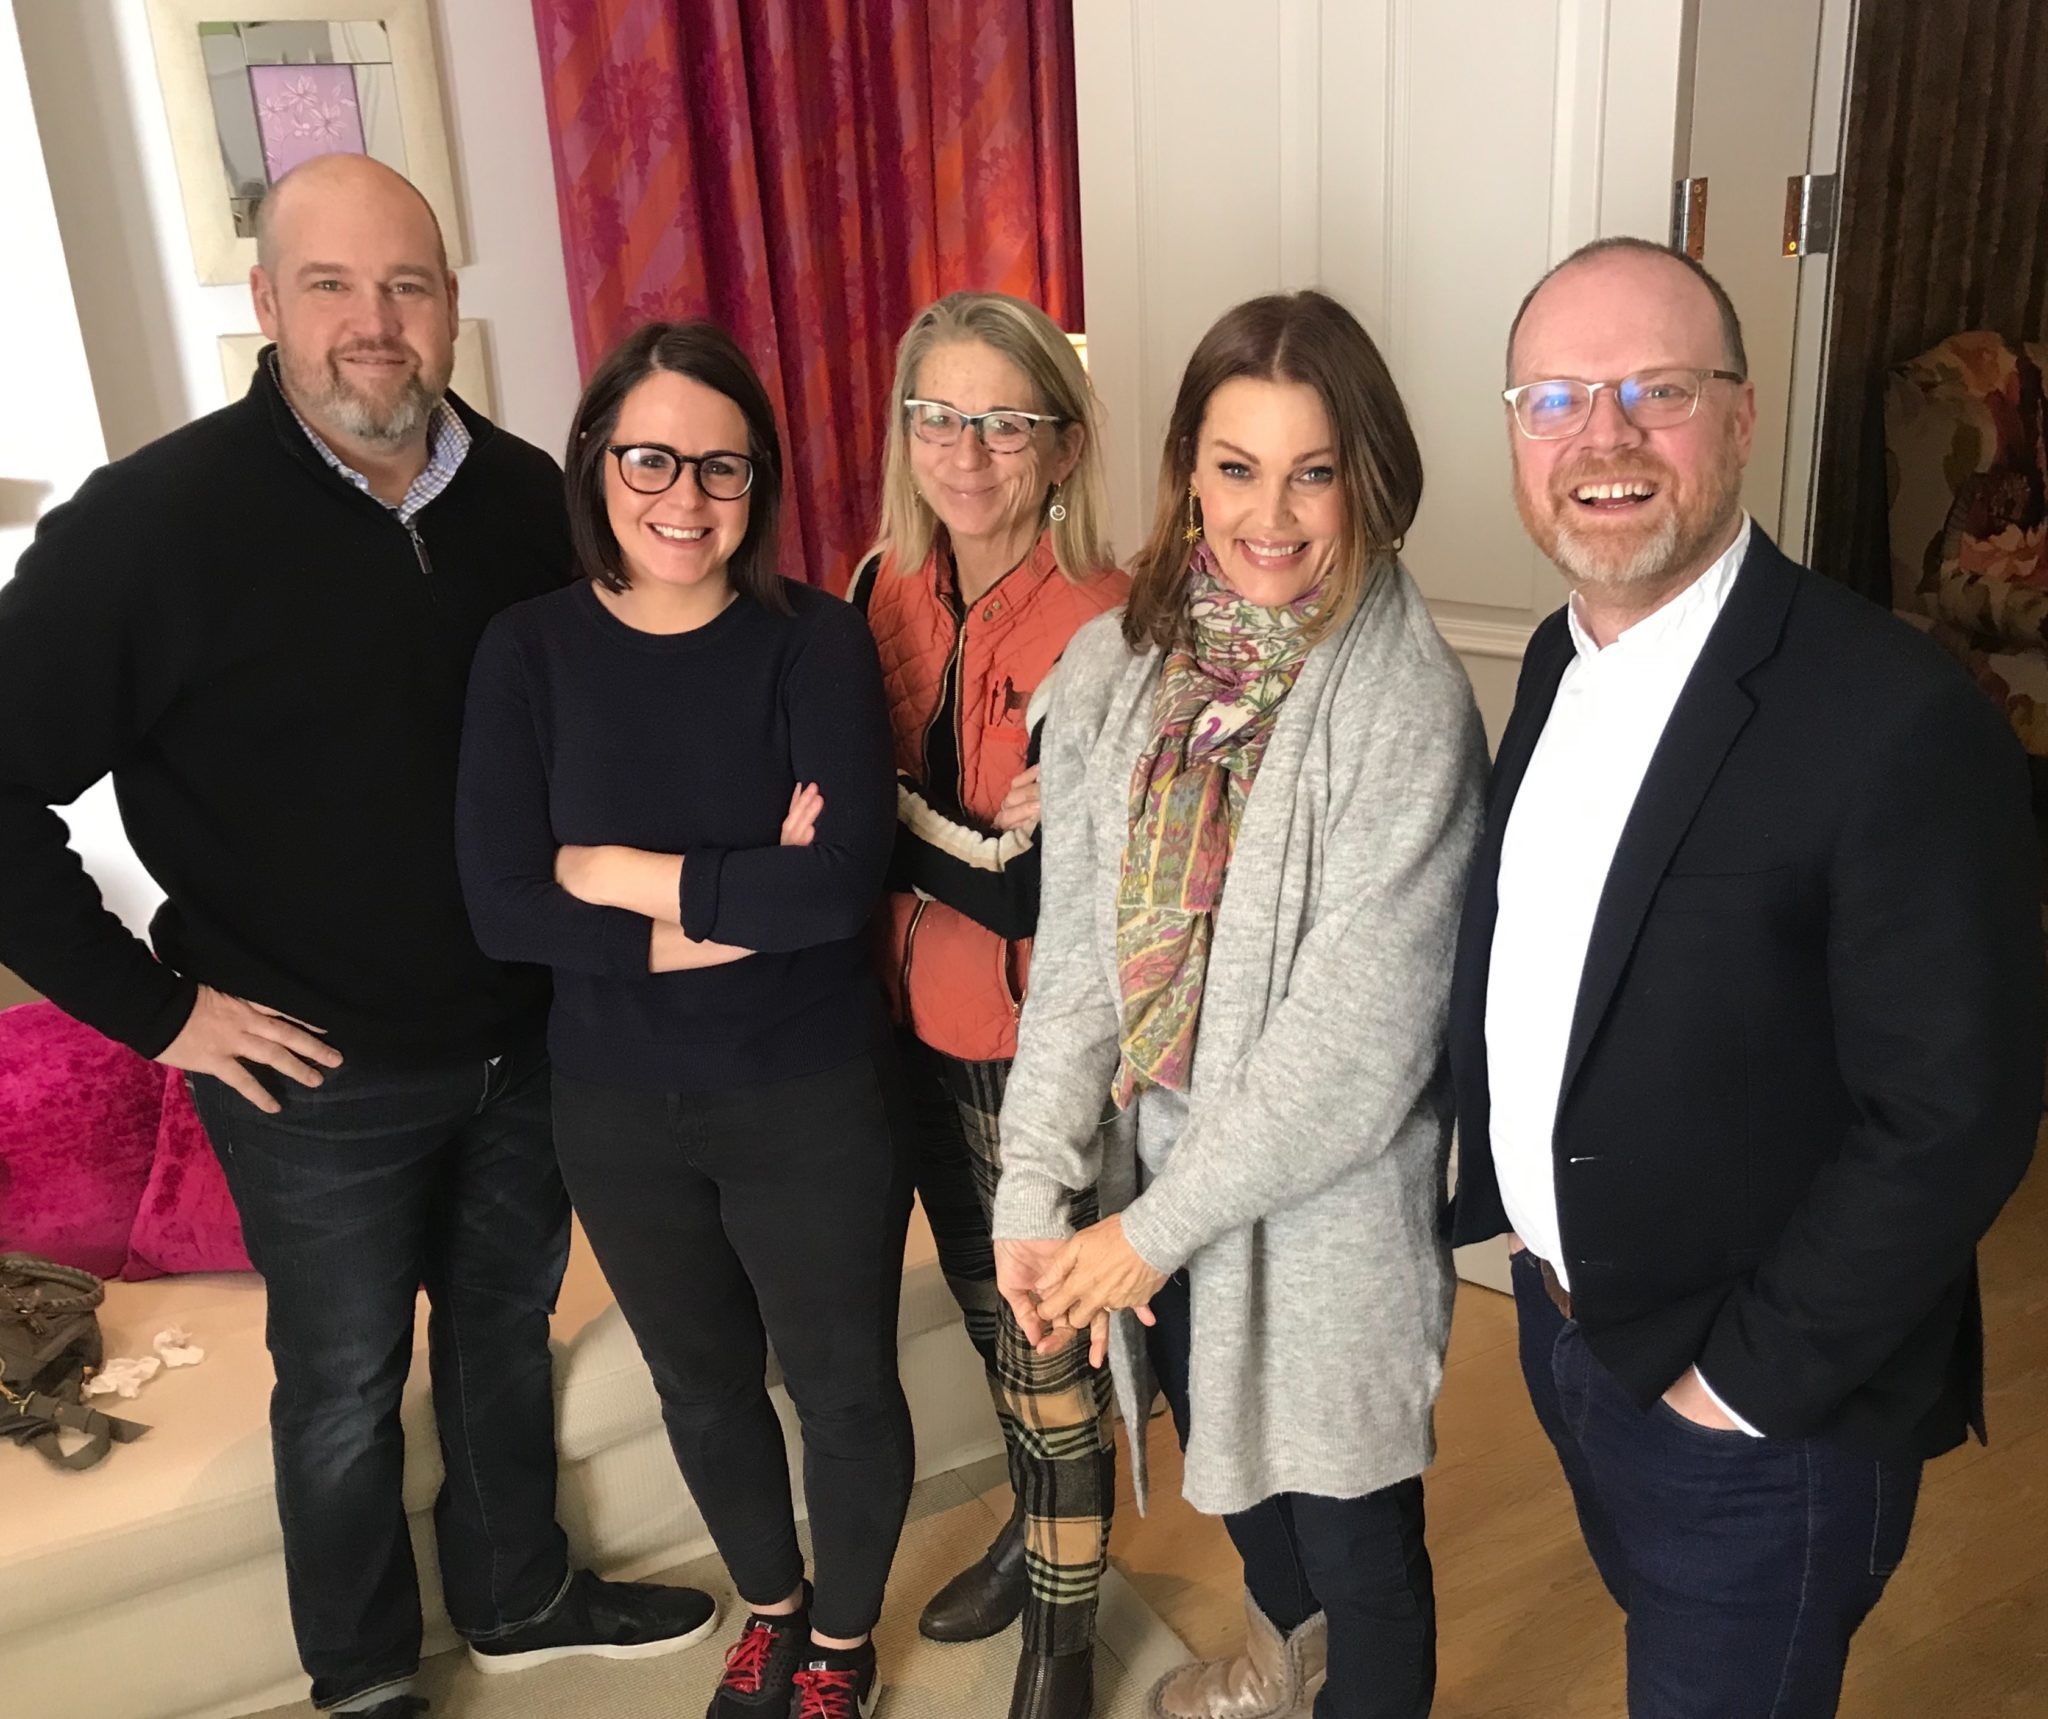 The team behind new documentary on The Go-Gos. From left to right: Corey Russell, Fadoo Productions, Eimhear O'Neill, Fine Point Films, Director Alison Ellwood, Belinda Carlisle and Trevor Birney, Fine Point Films.